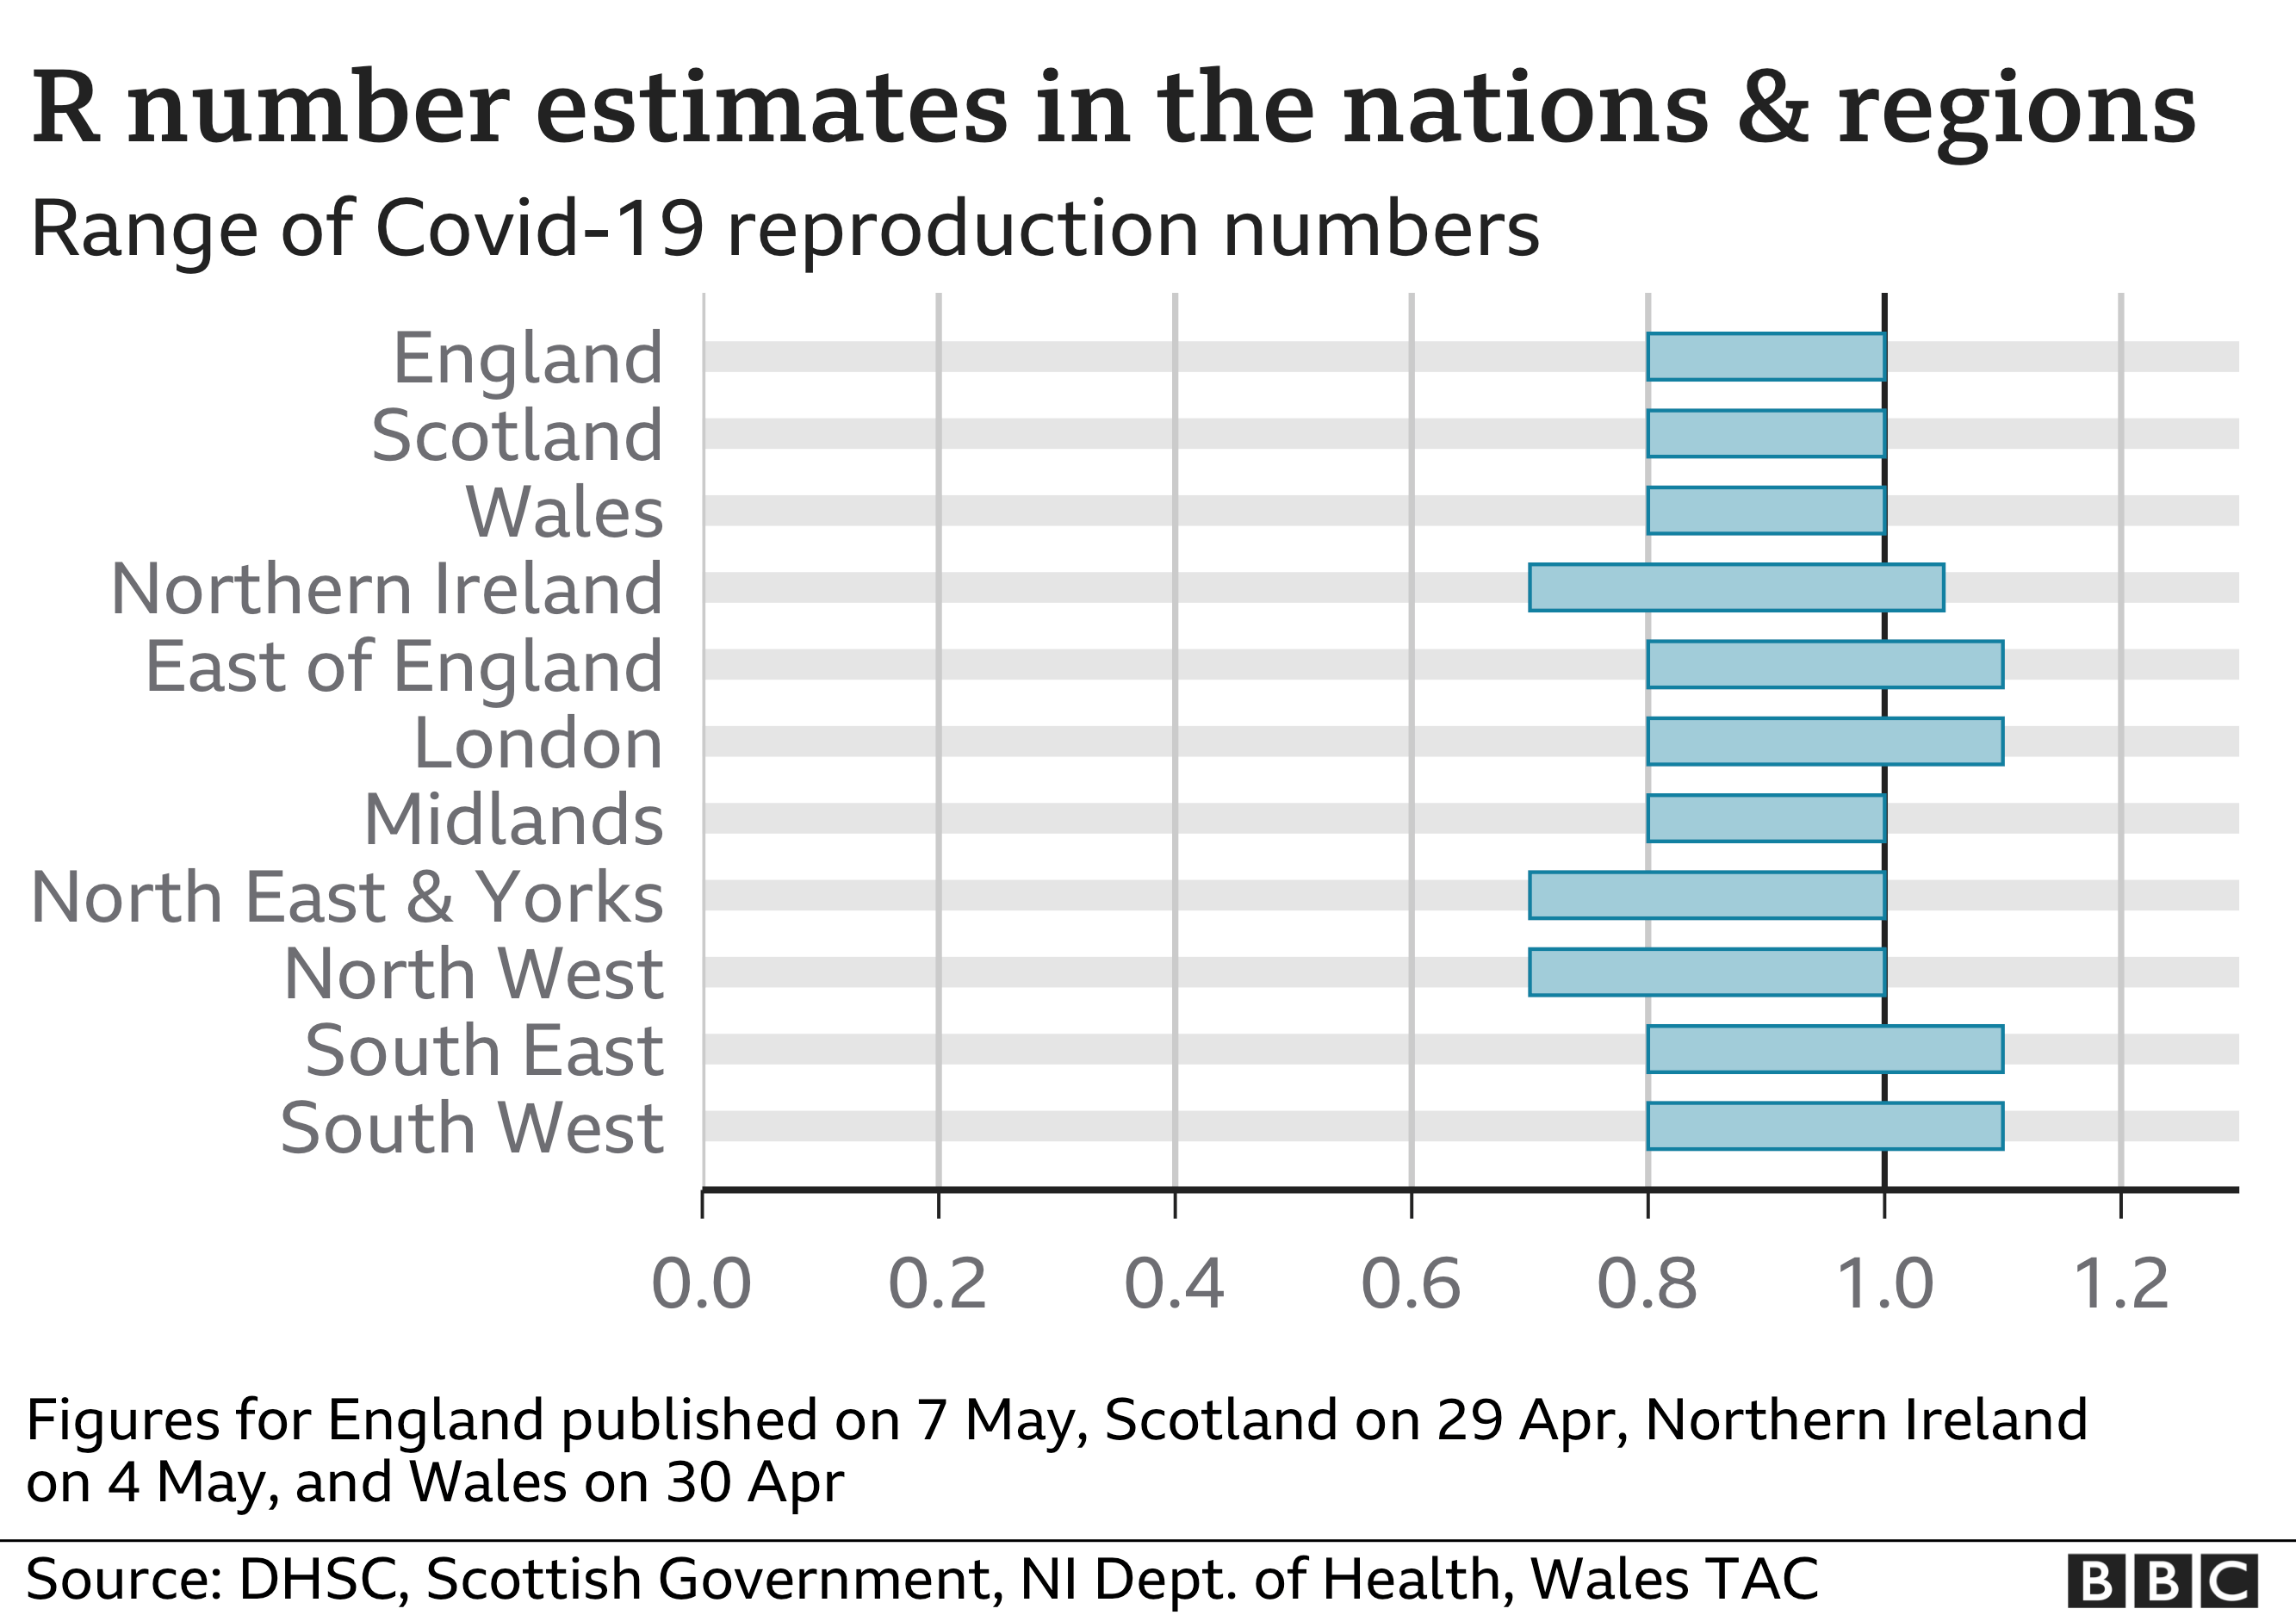 Chart showing R number estimates for nations and regions. For the nations the latest figures are: England between 0.8 and 1; Scotland between 0.8 and 1; Wales between 0.8 and 1; Northern Ireland between 0.7 and 1.05. For English regions the latest figures are: East of England between 0.8 and 1.1; London between 0.8 and 1.1; Midlands between 0.8 and 1; North East & Yorkshire between 0.7 and 1; North West between 0.7 and 1; South East between 0.8 and 1.1; South West between 0.8 and 1.1.